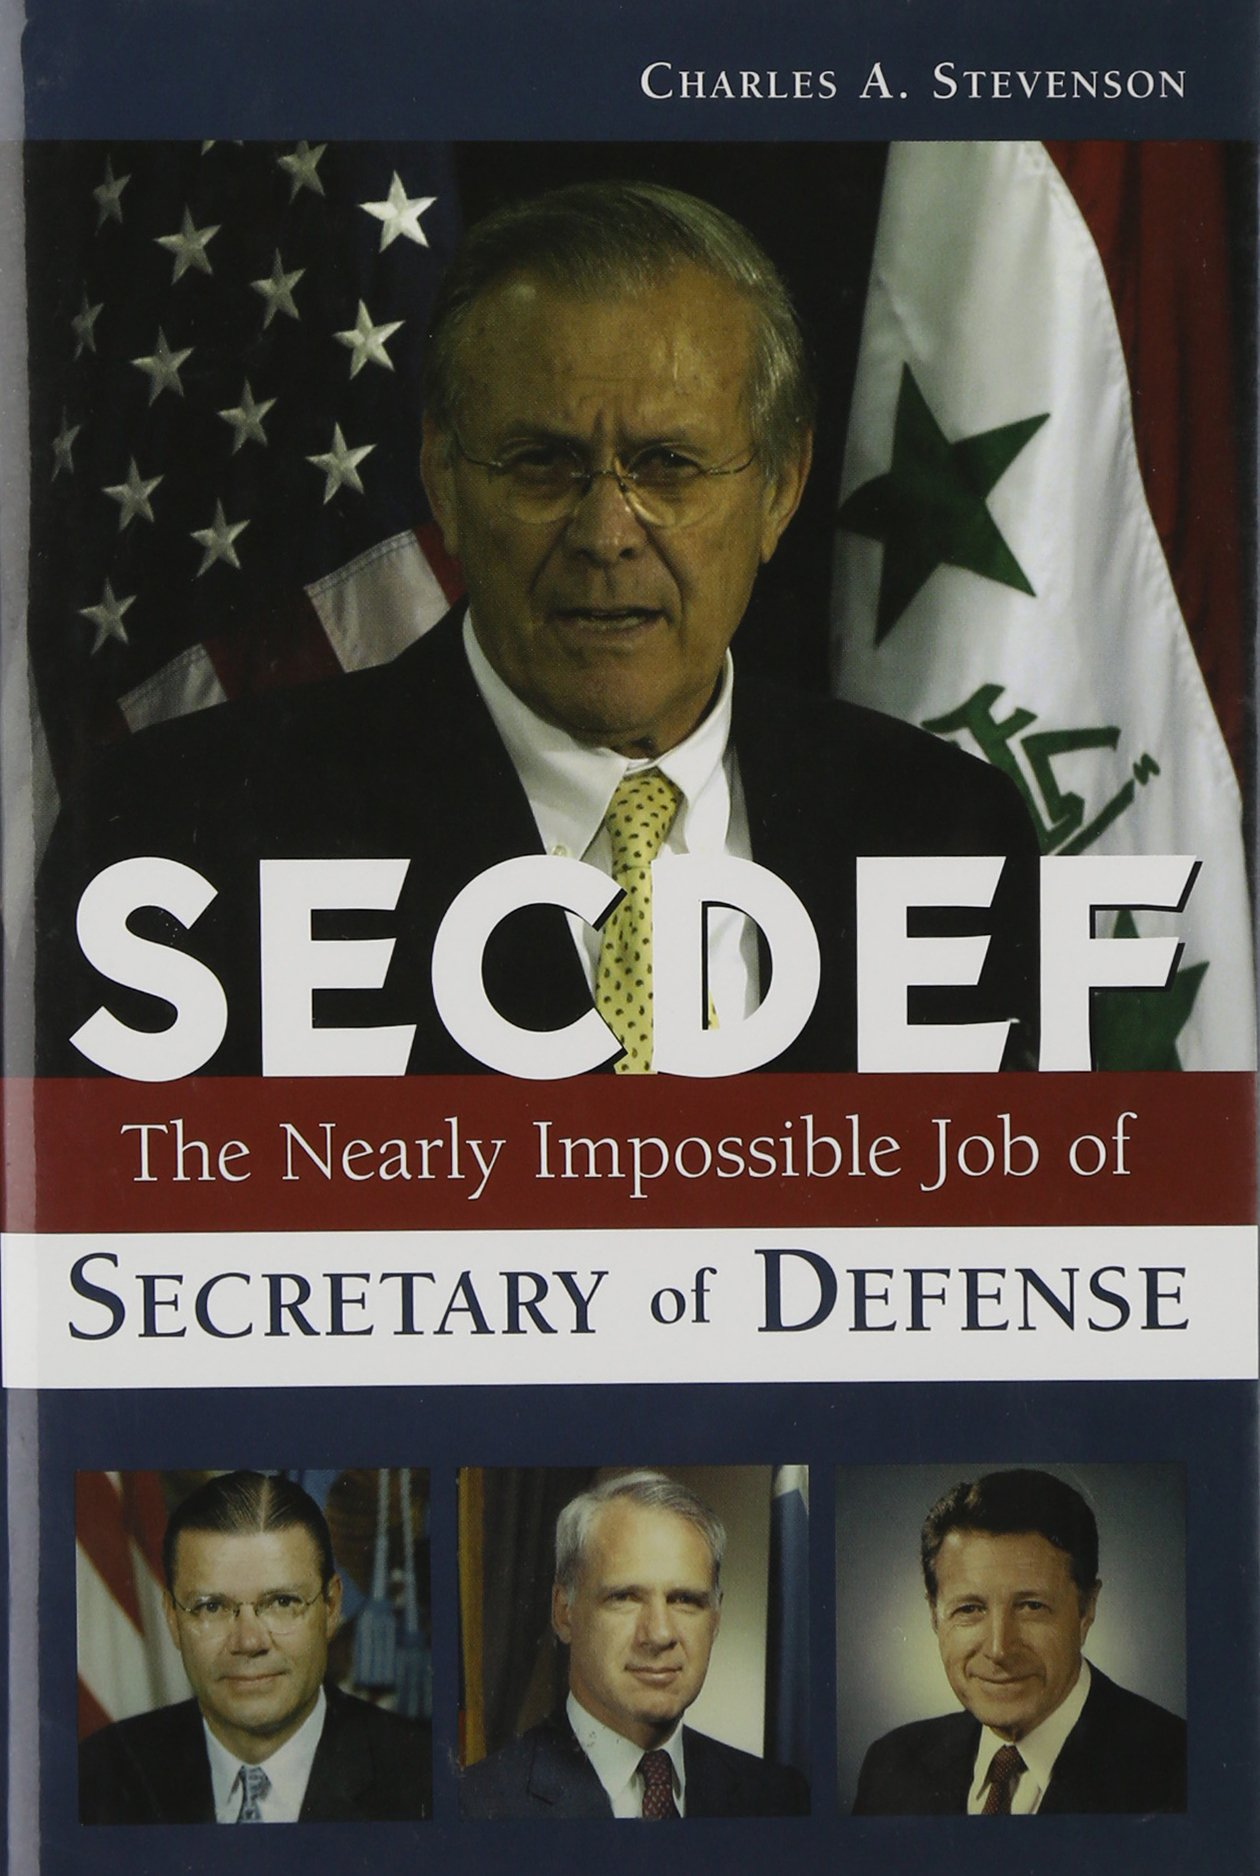 Download SECDEF: The Nearly Impossible Job of Secretary of Defense PDF